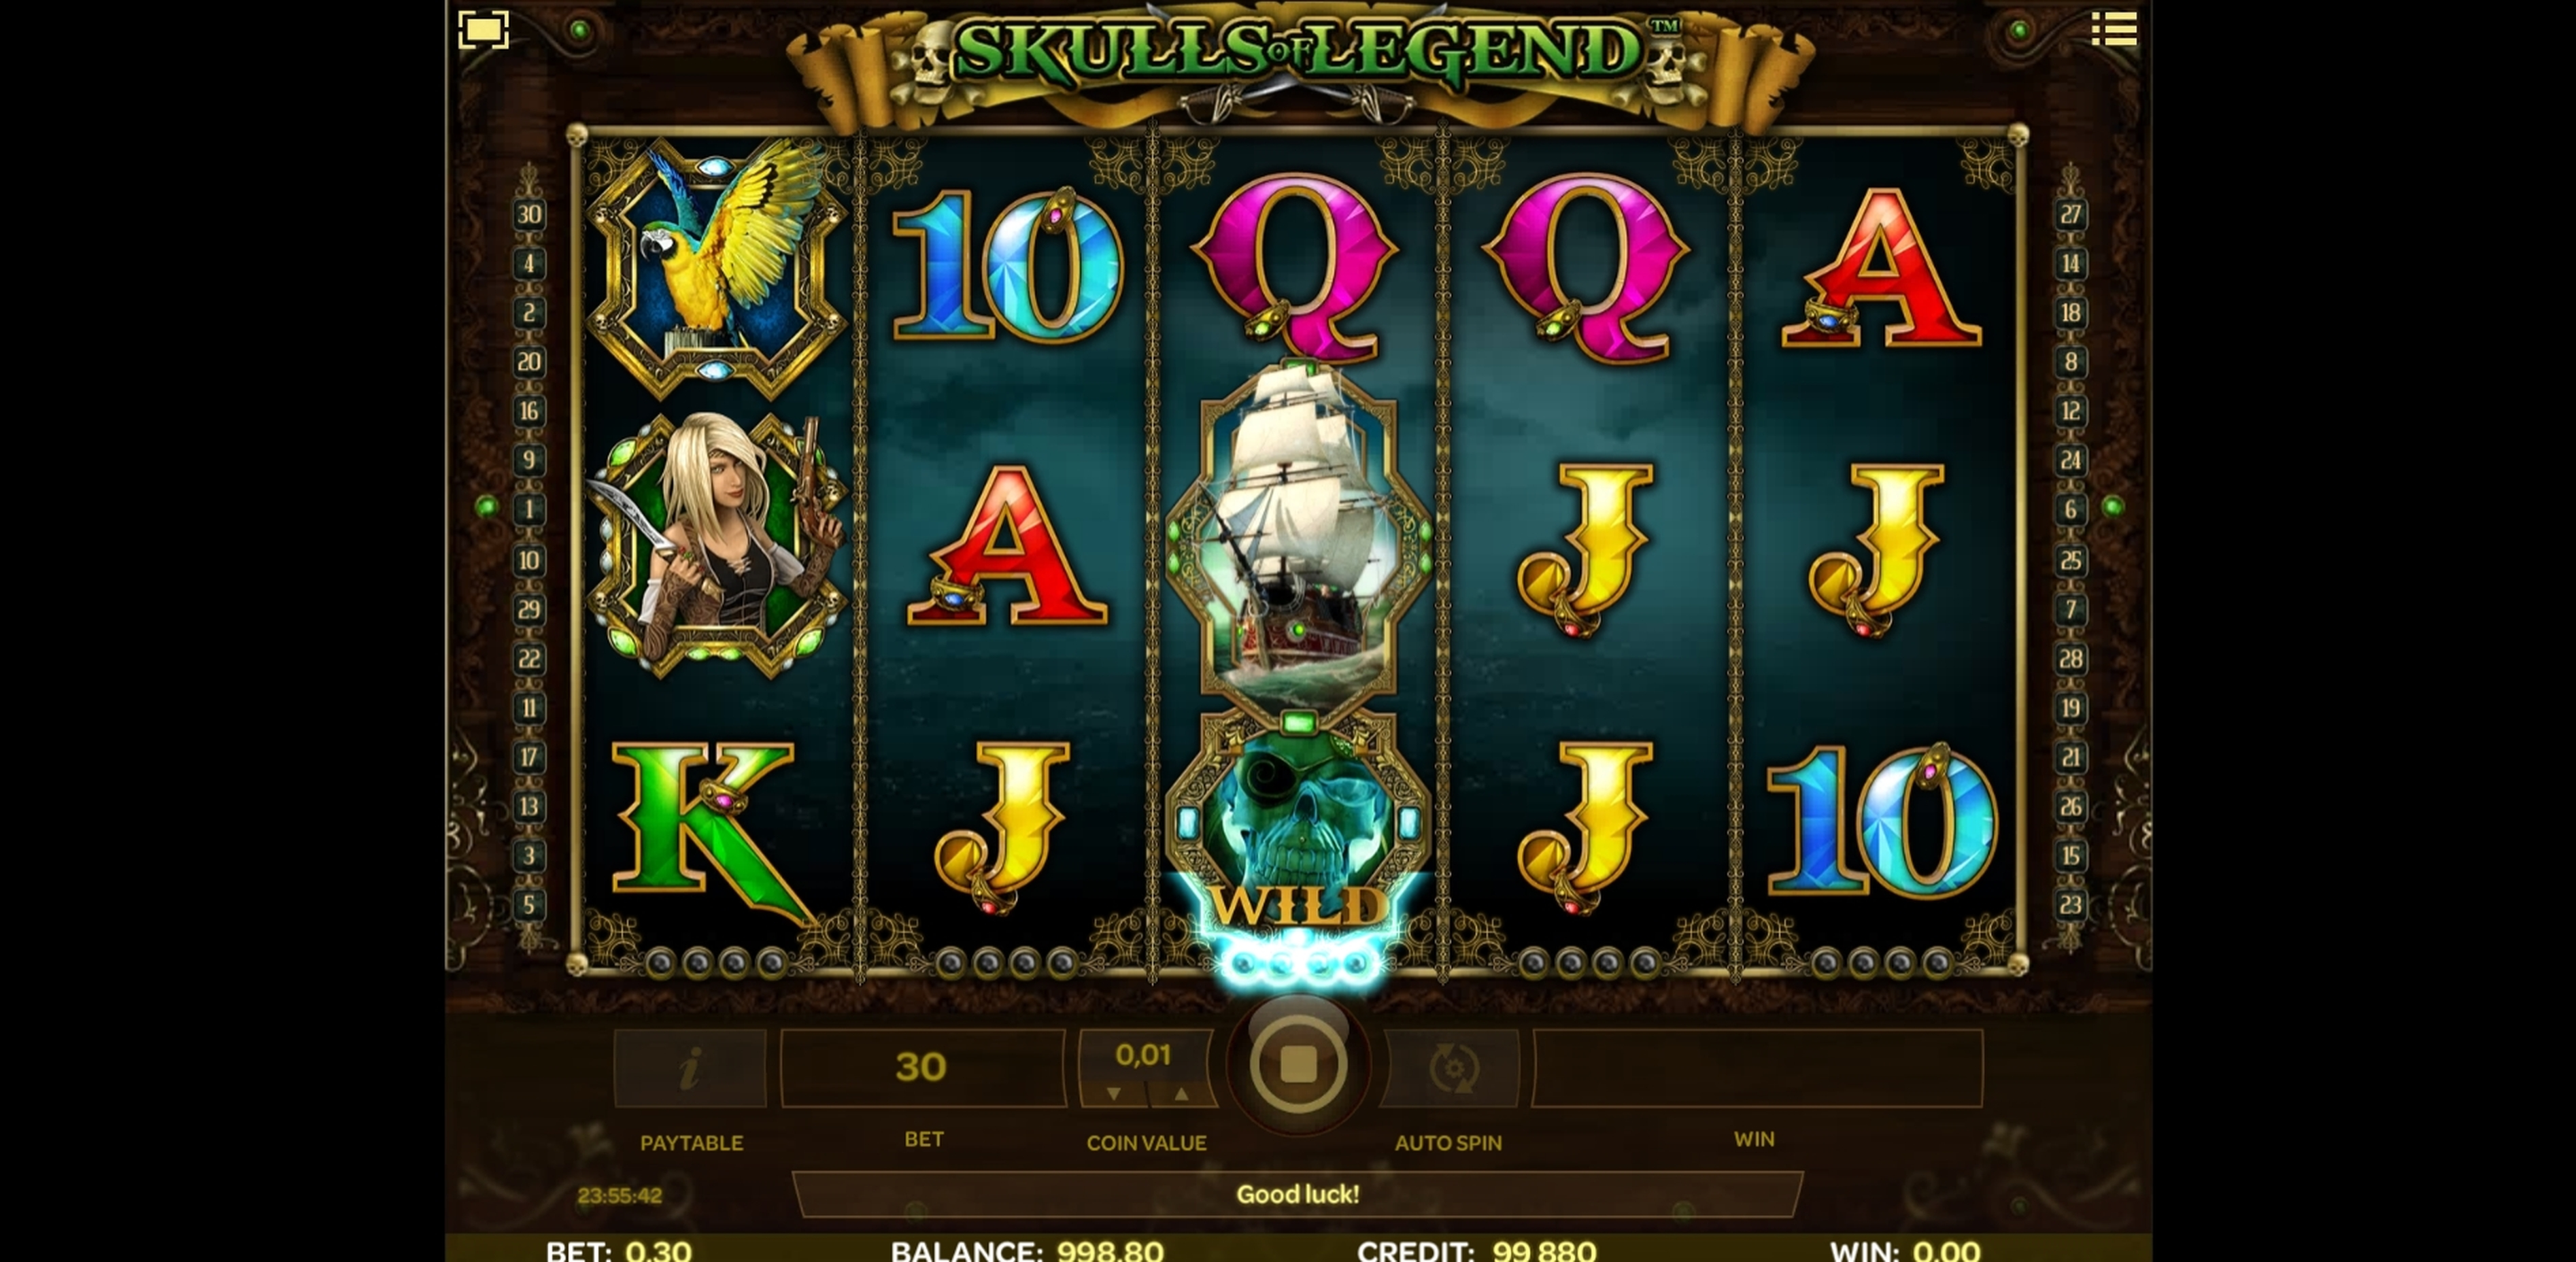 Win Money in Skulls of Legend Free Slot Game by iSoftBet